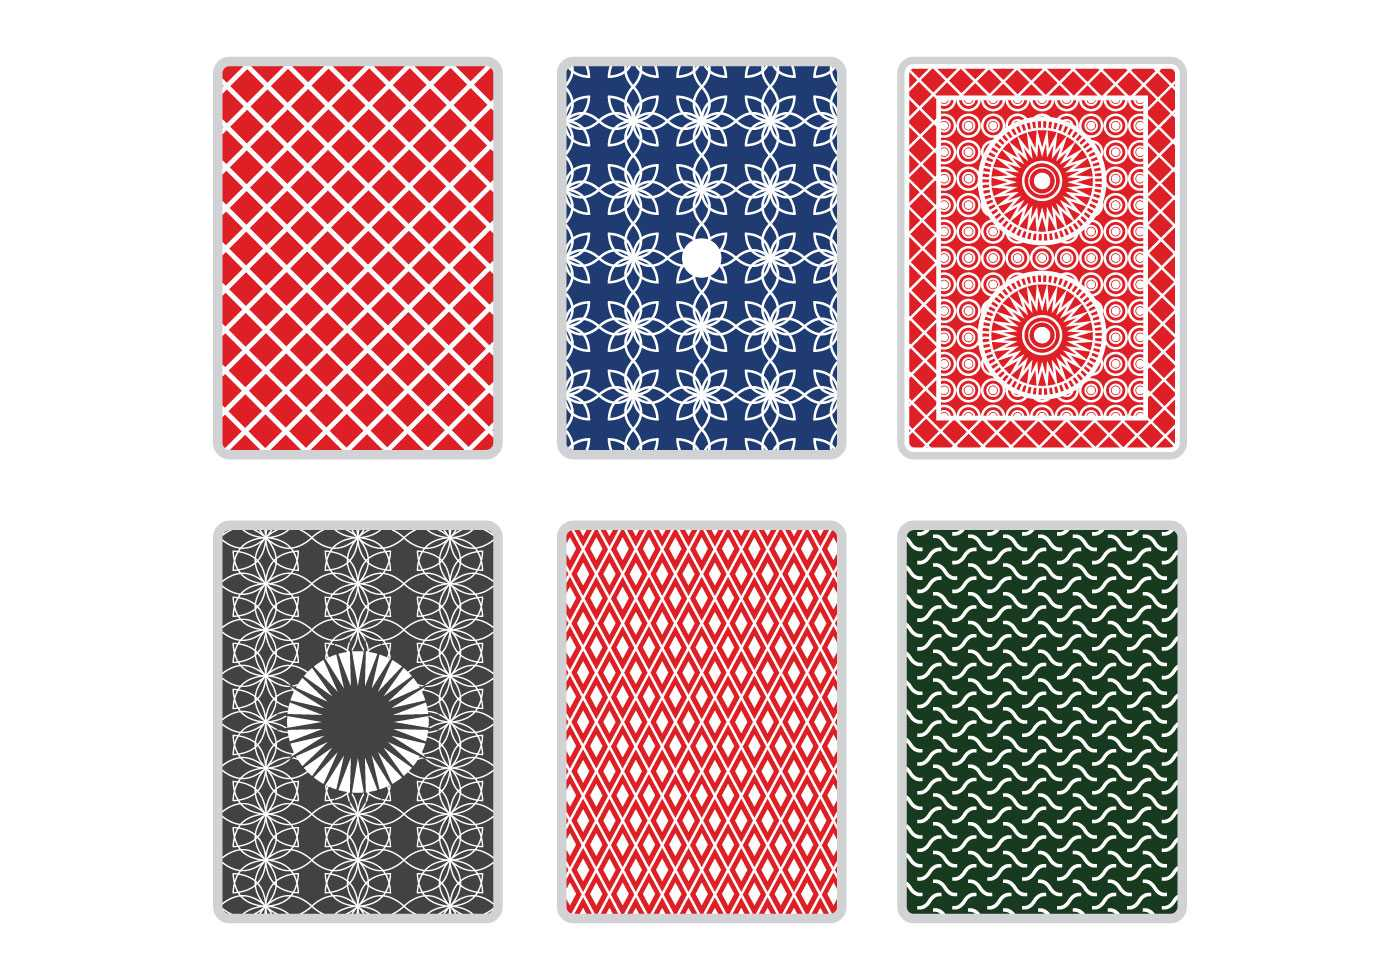 Playing Cards Background Free Vector Art - (883 Free Downloads) Inside Playing Card Design Template